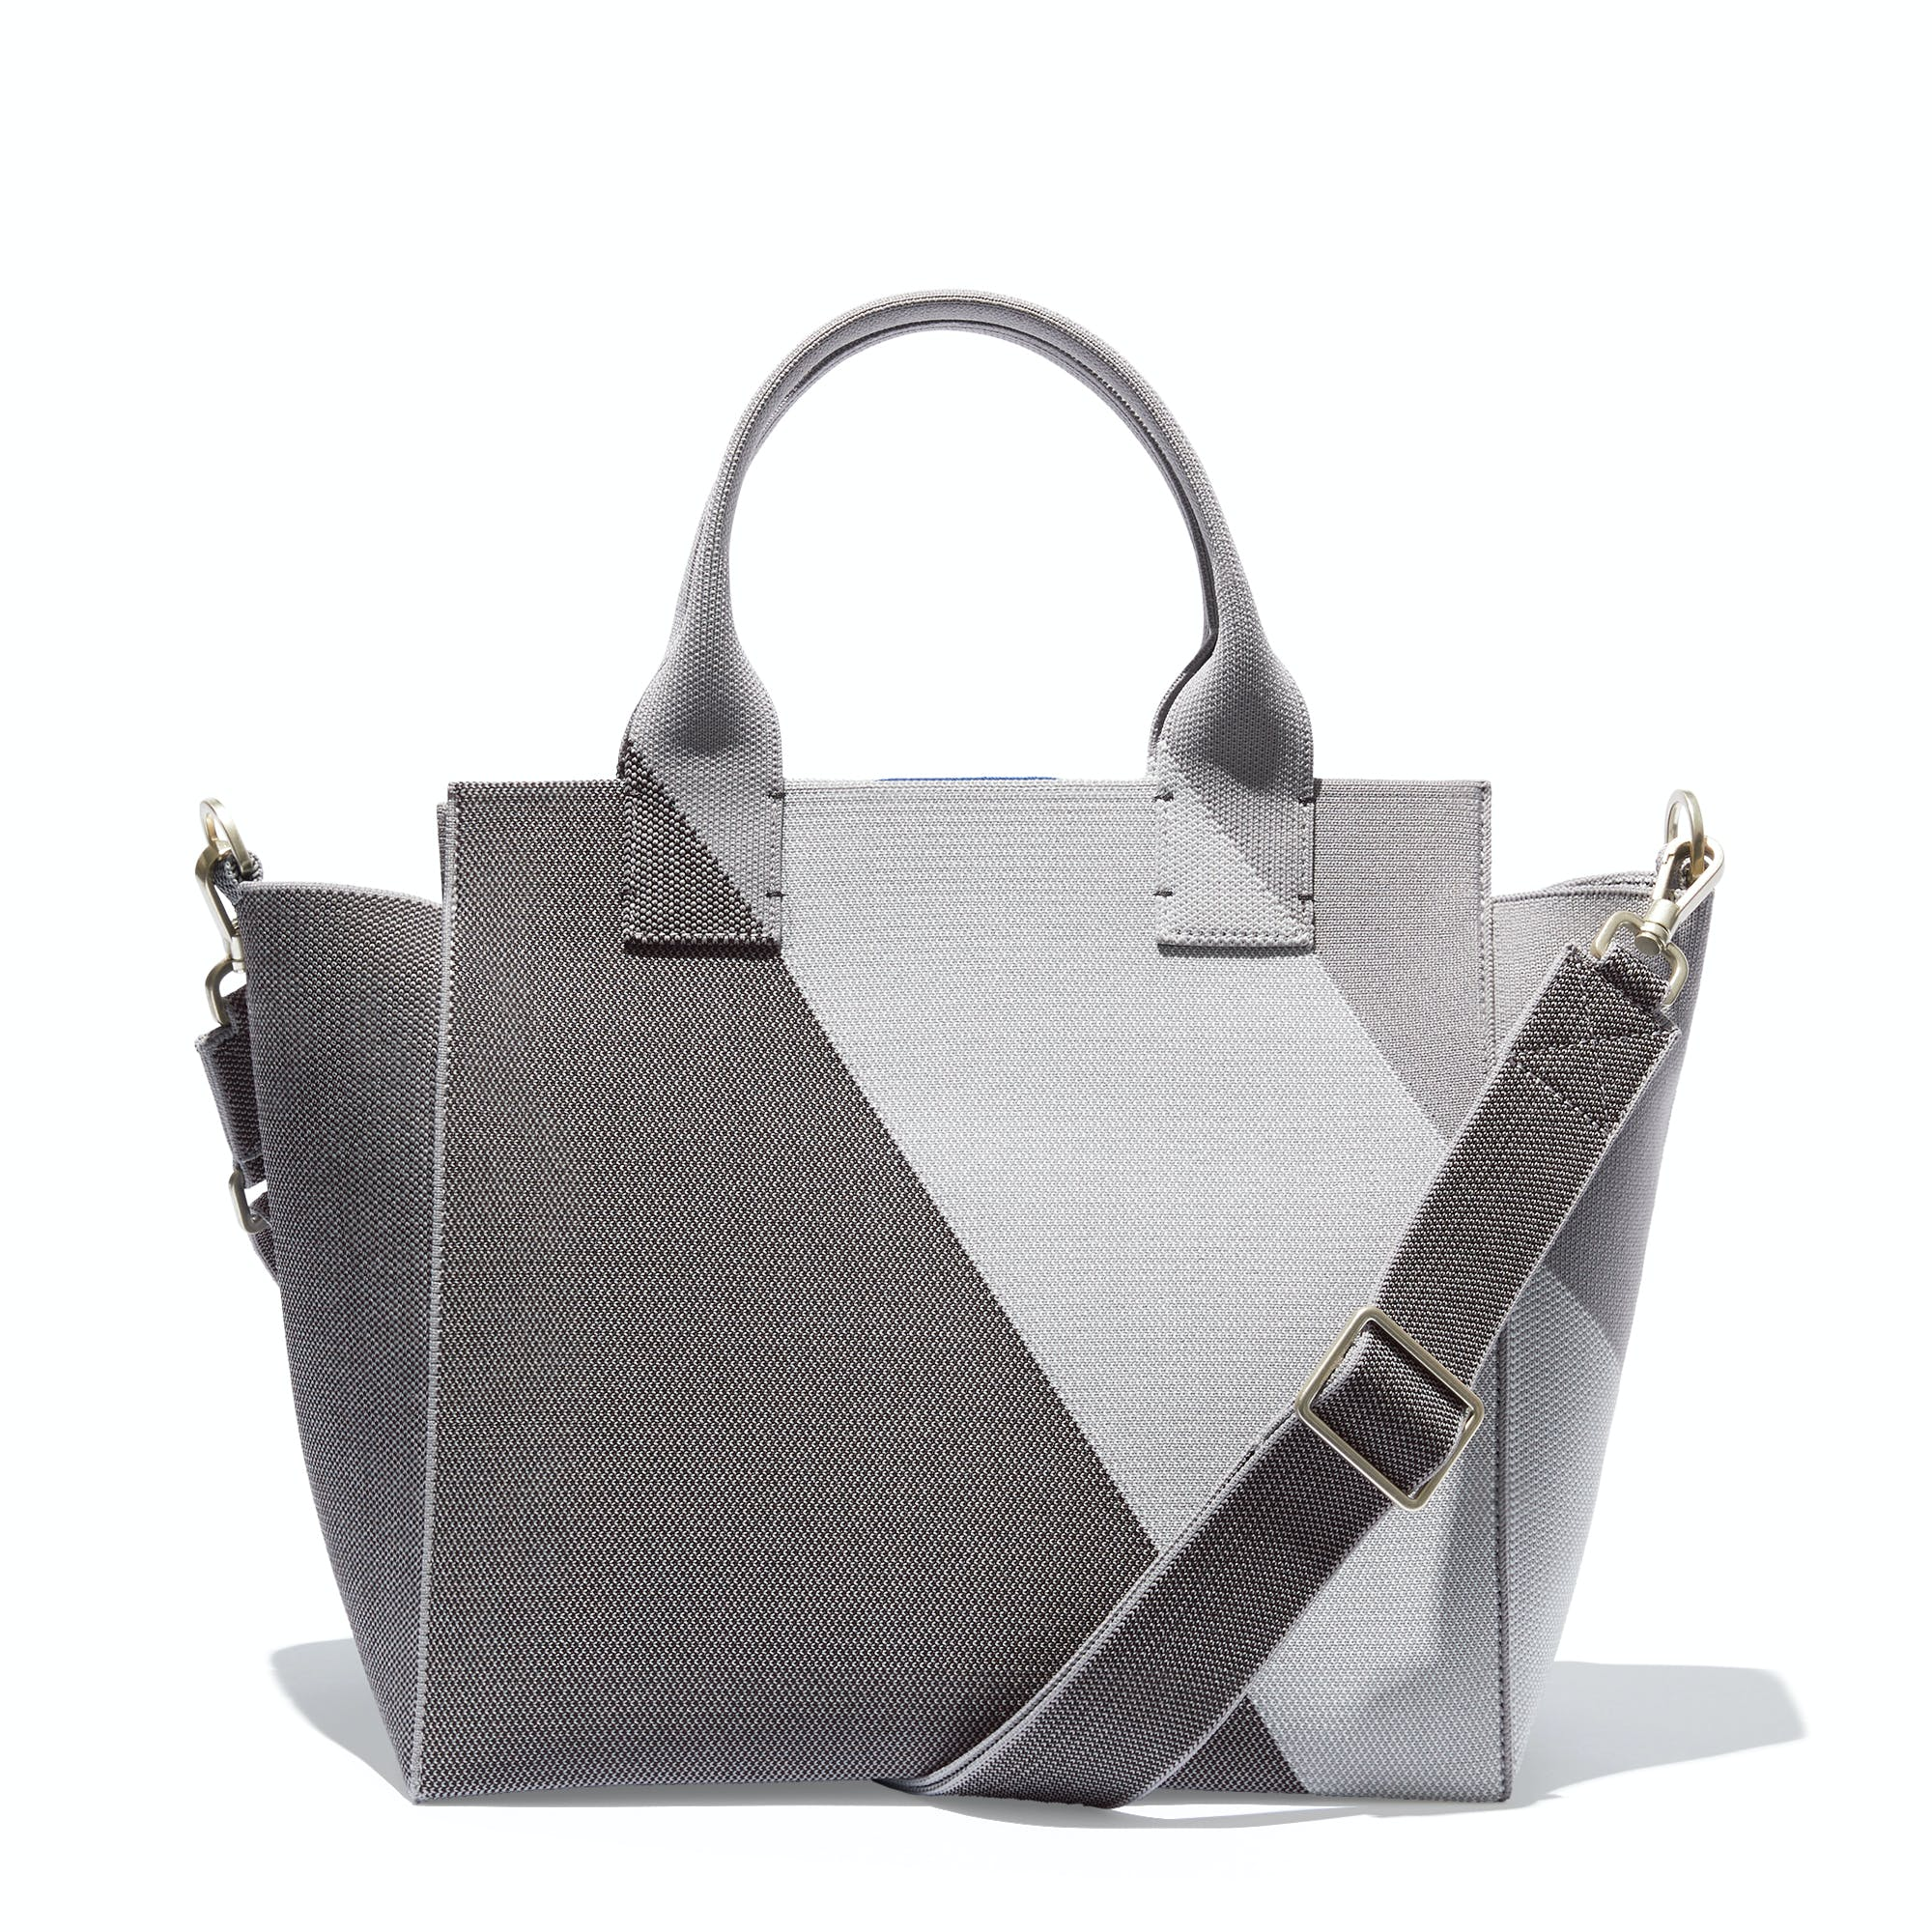 The Handbag in Charcoal Grey shown from the front.